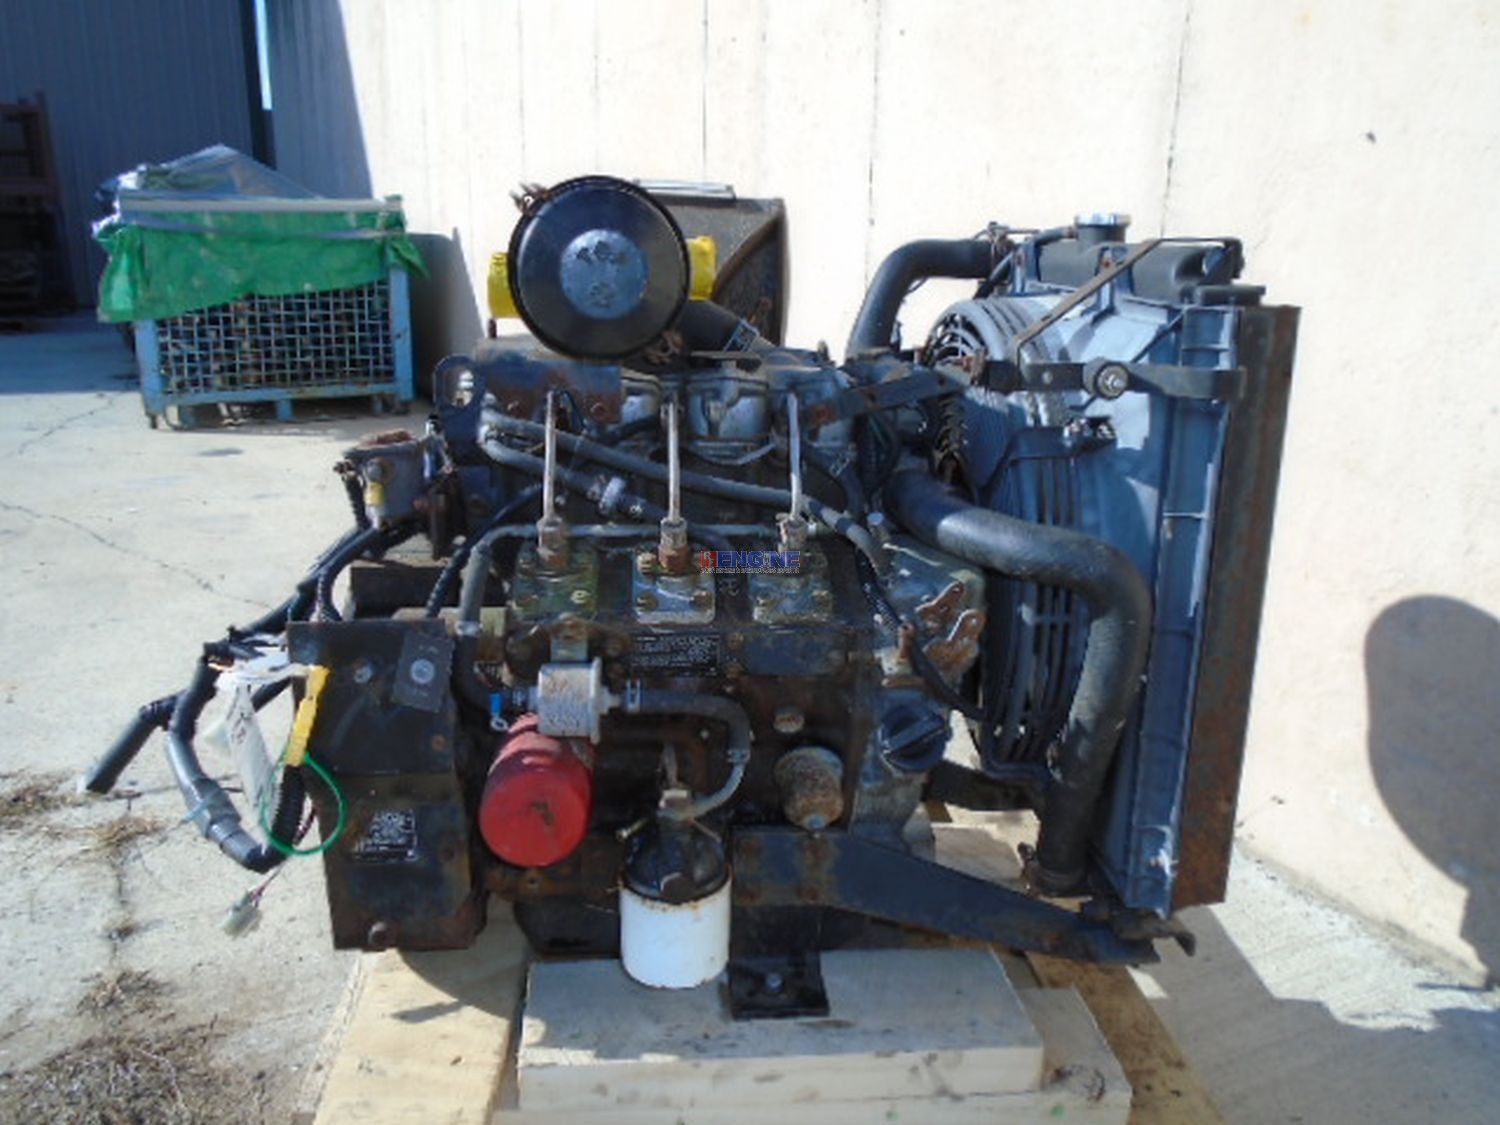 R F Engine Isuzu 3LB1 I.D.I. OEM Engine Complete Good Running A Fam#  5SZXL01.1XNA Code# 3LBR F Engine